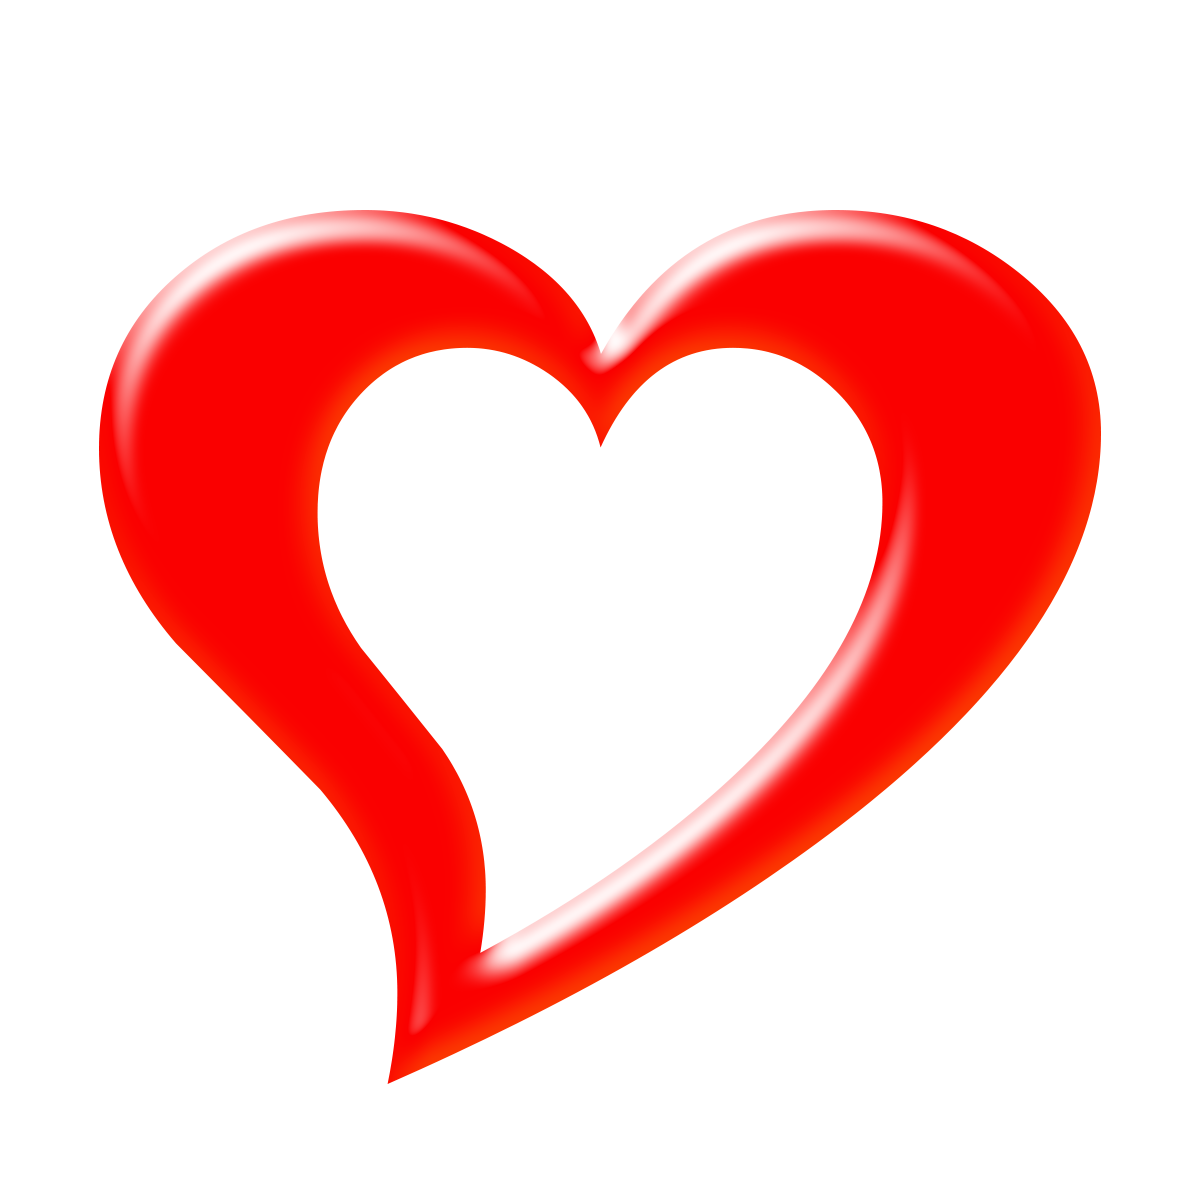 Free Download High Quality 3d Png Heart Transparent 3d Red Shinning Heart Its A Good Quality Shining 3d Heart Transparent It Is Not Only F Png 3d Heart Image